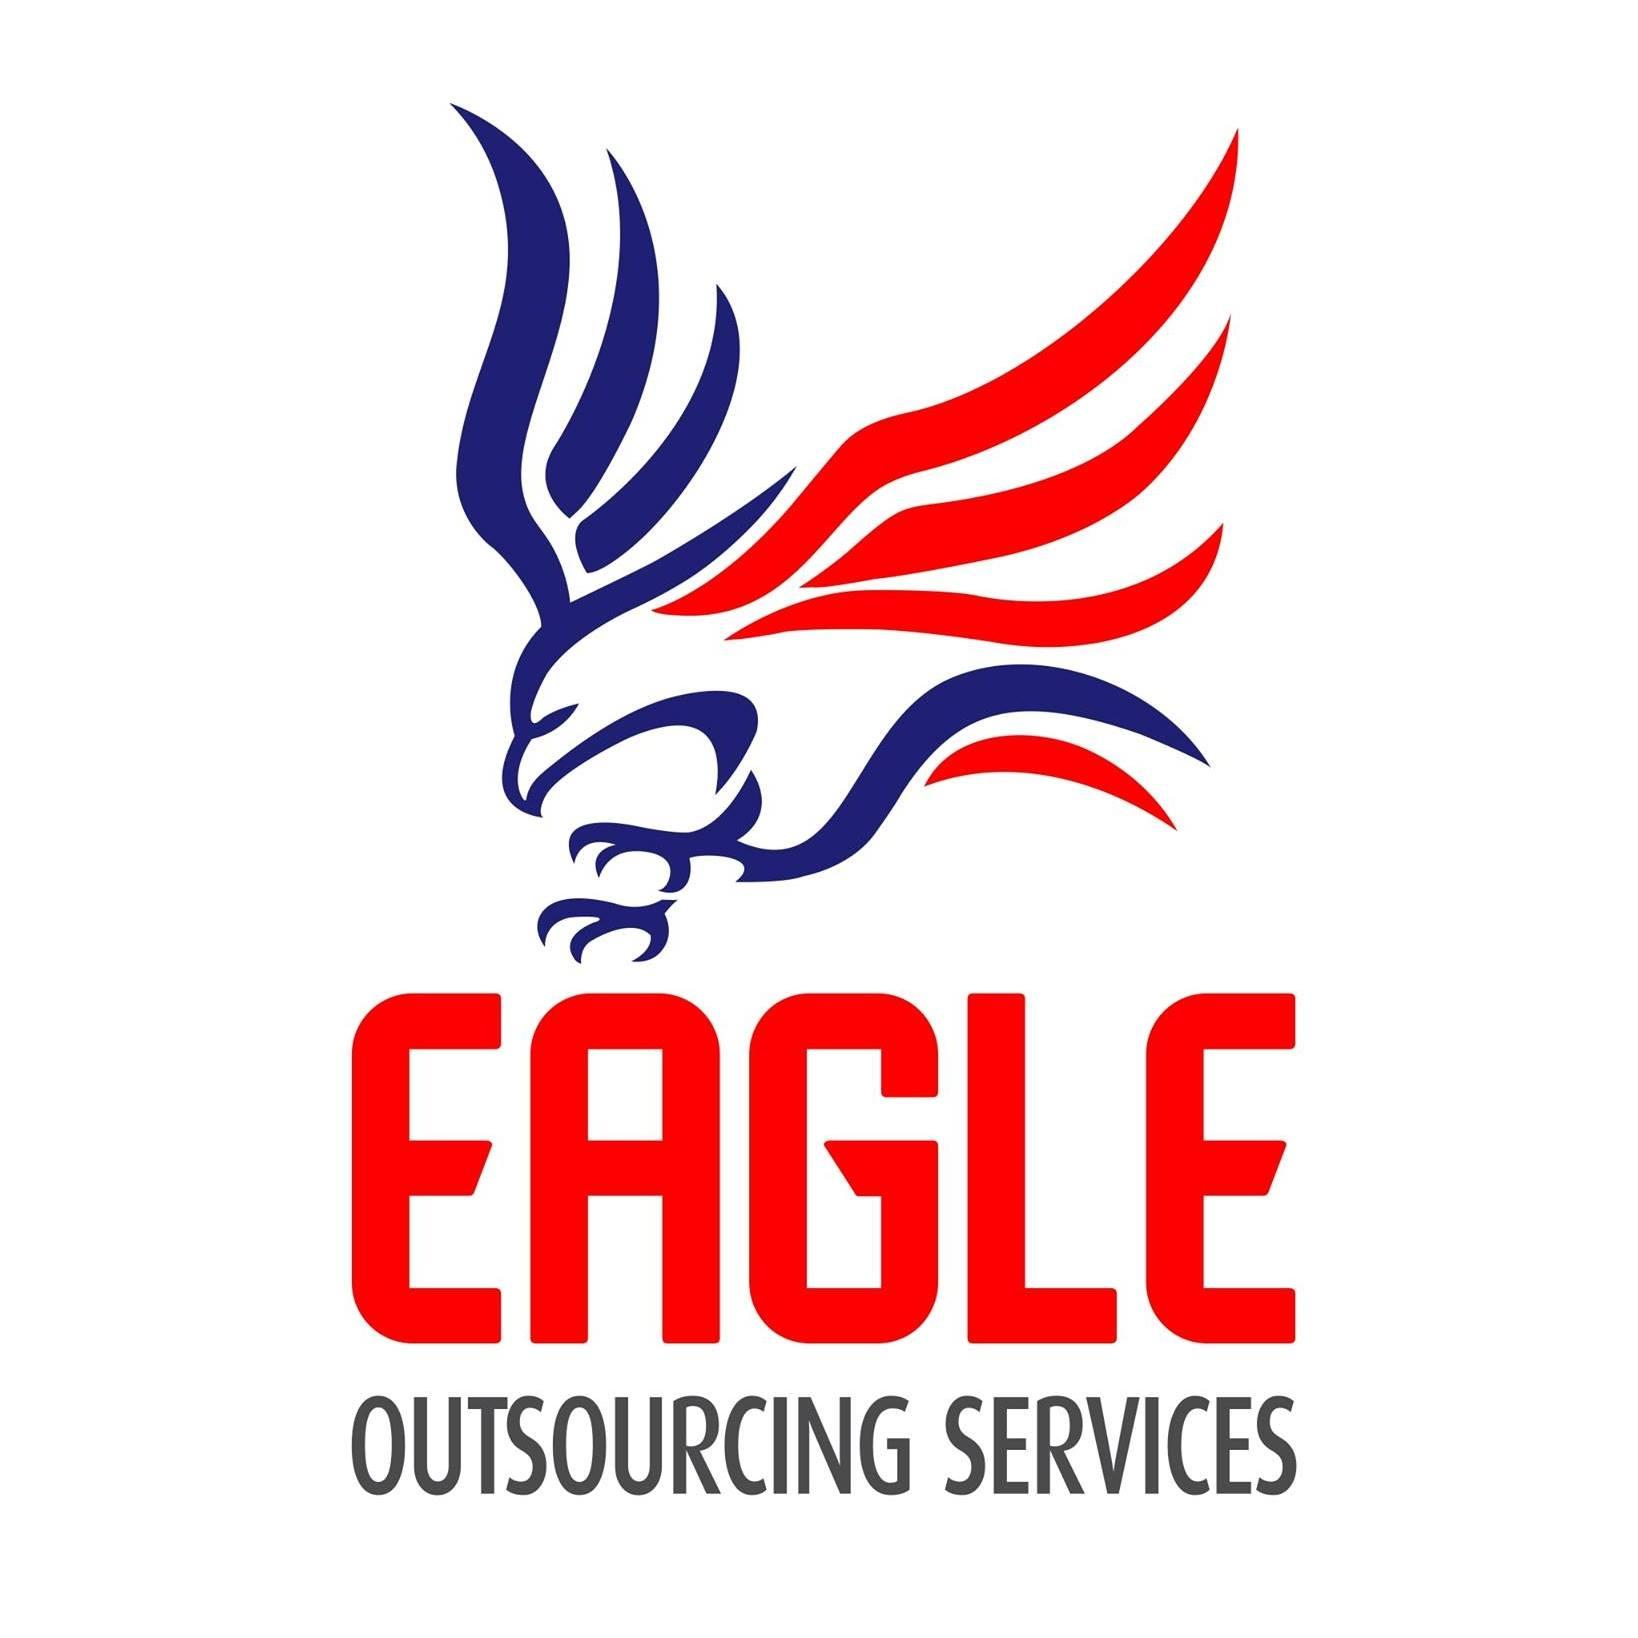 Eagle Outsourcing Service